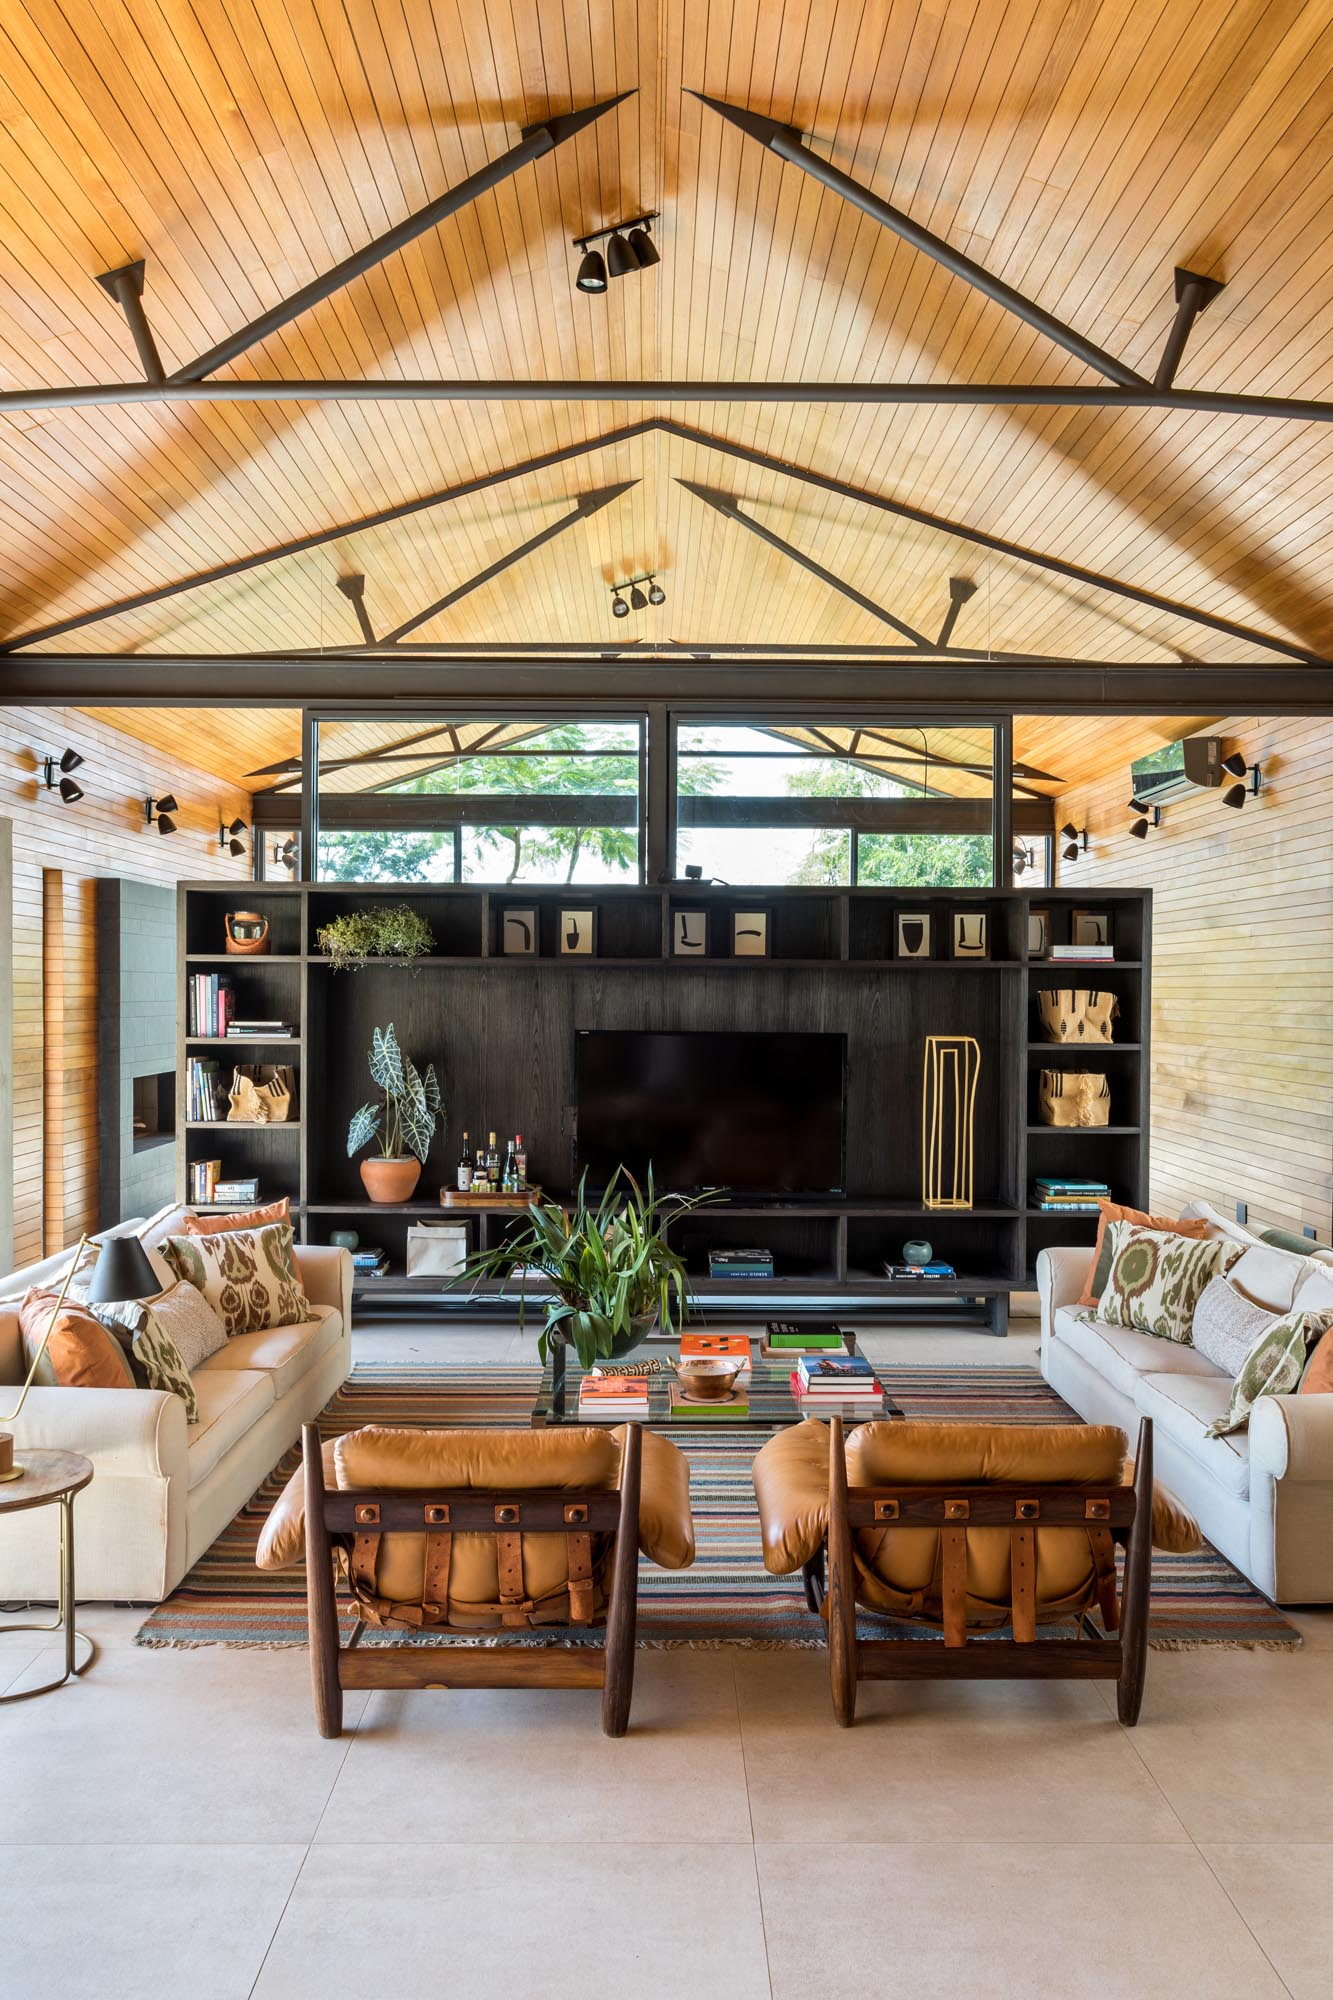 The room divider in this modern home living room, which is made from wood with steel supports, has a wall of shelving with an open area for displaying a television.